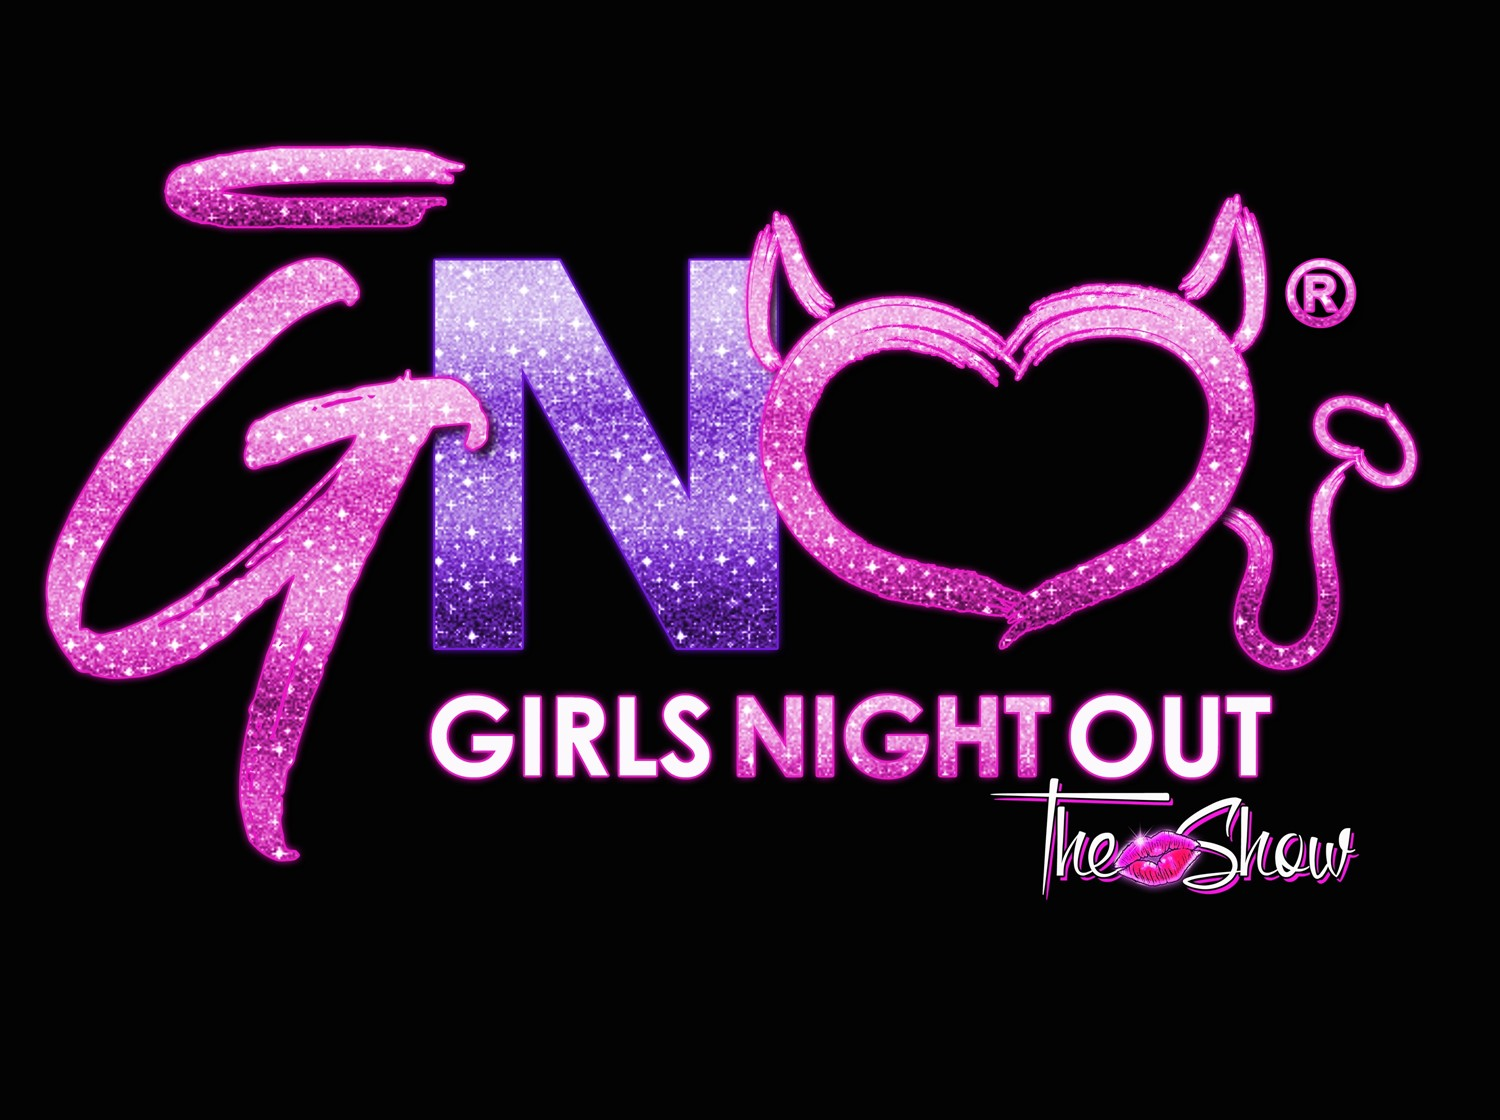 Bricktown Comedy Club (18+) Oklahoma City, OK on May 04, 19:30@Bricktown Comedy Club - Buy tickets and Get information on Girls Night Out the Show tickets.girlsnightouttheshow.com